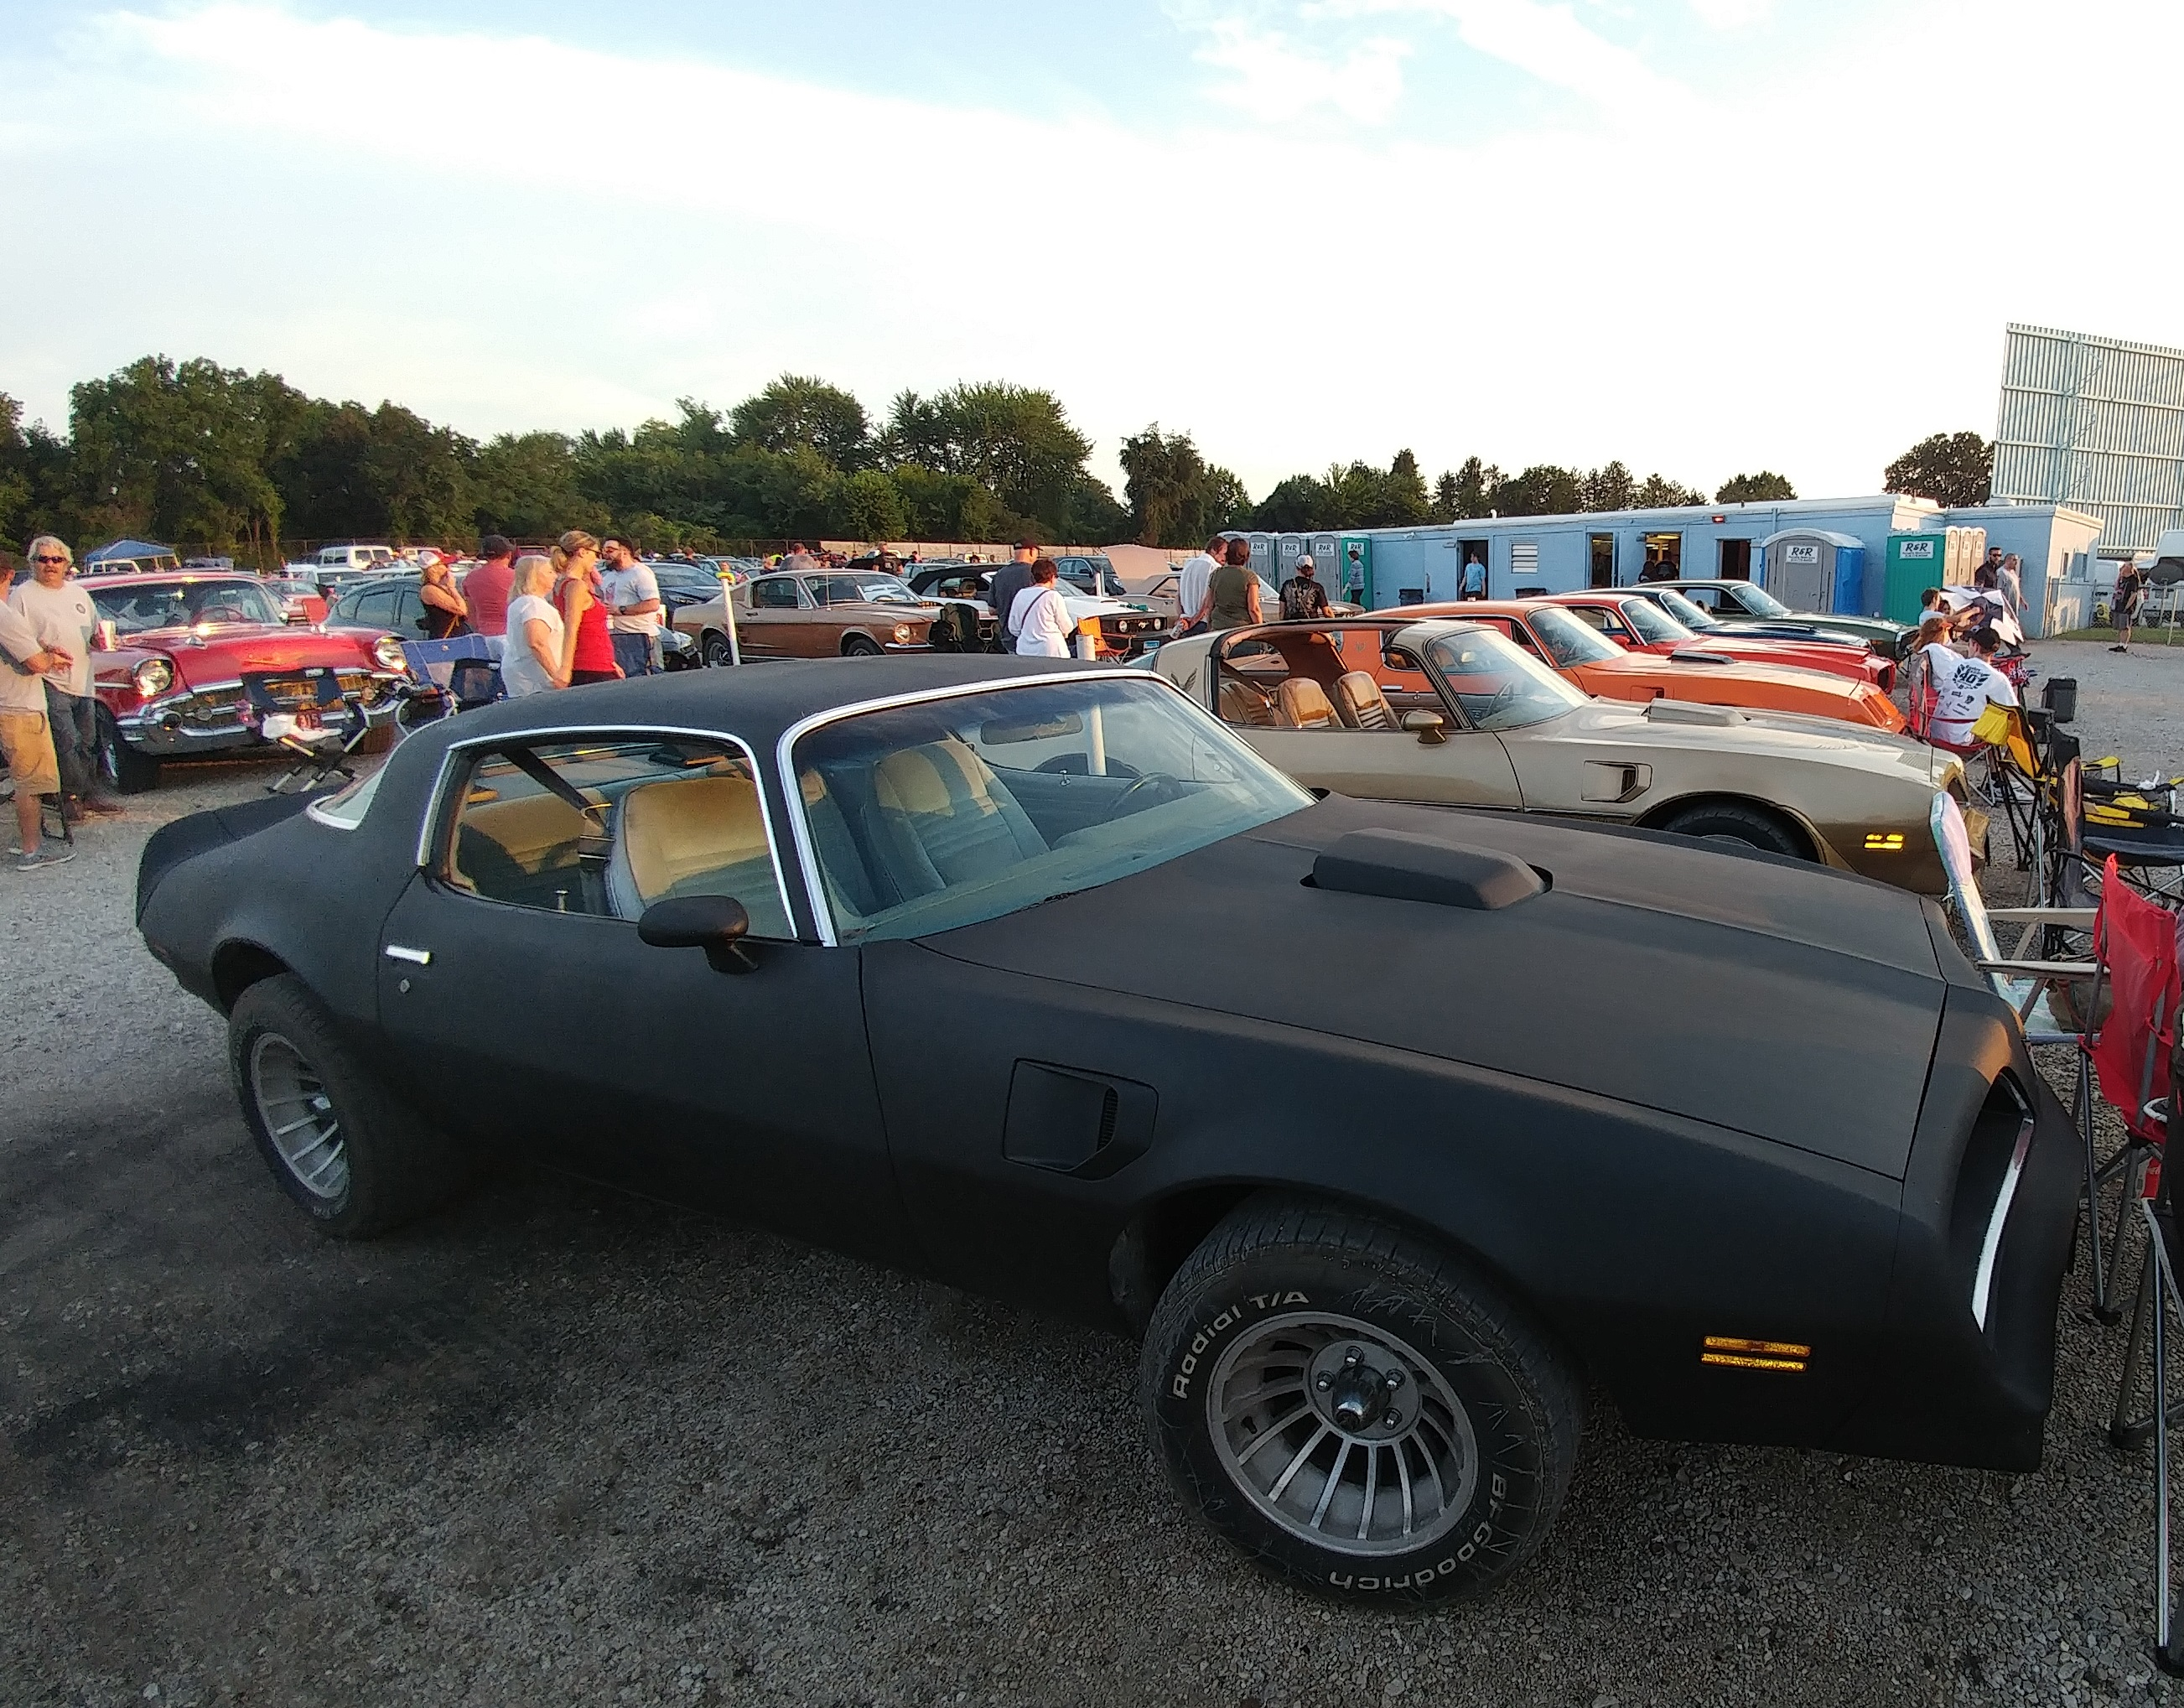 Summer 2018 Drive in Movie at SkyView in Belleville IL v8tv movie night - 19189779